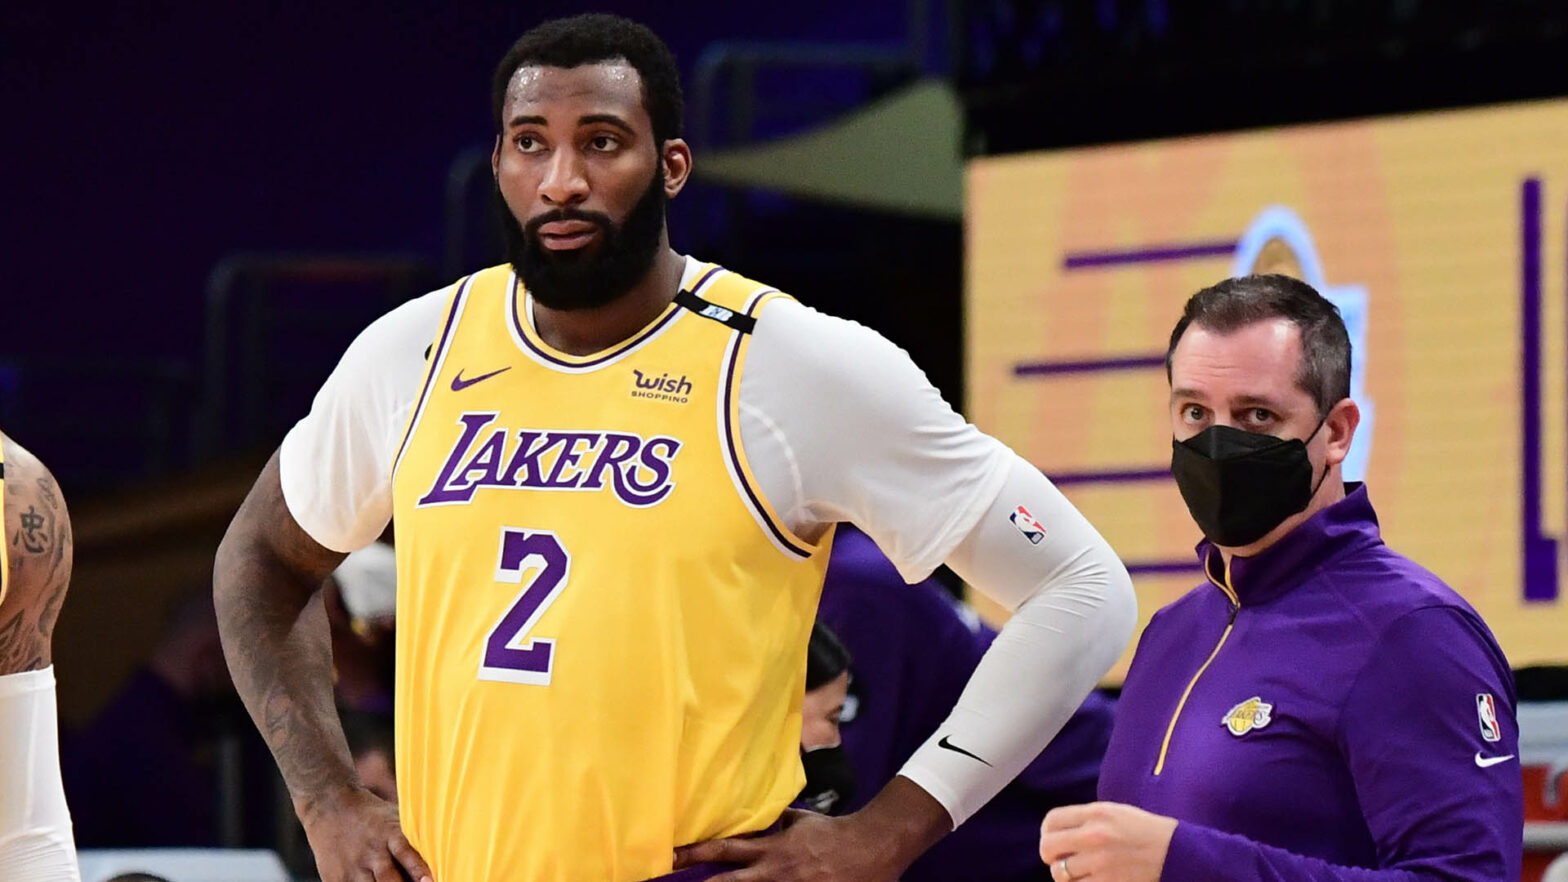 Lakers center Andre Drummond to play vs. Heat | NBA.com